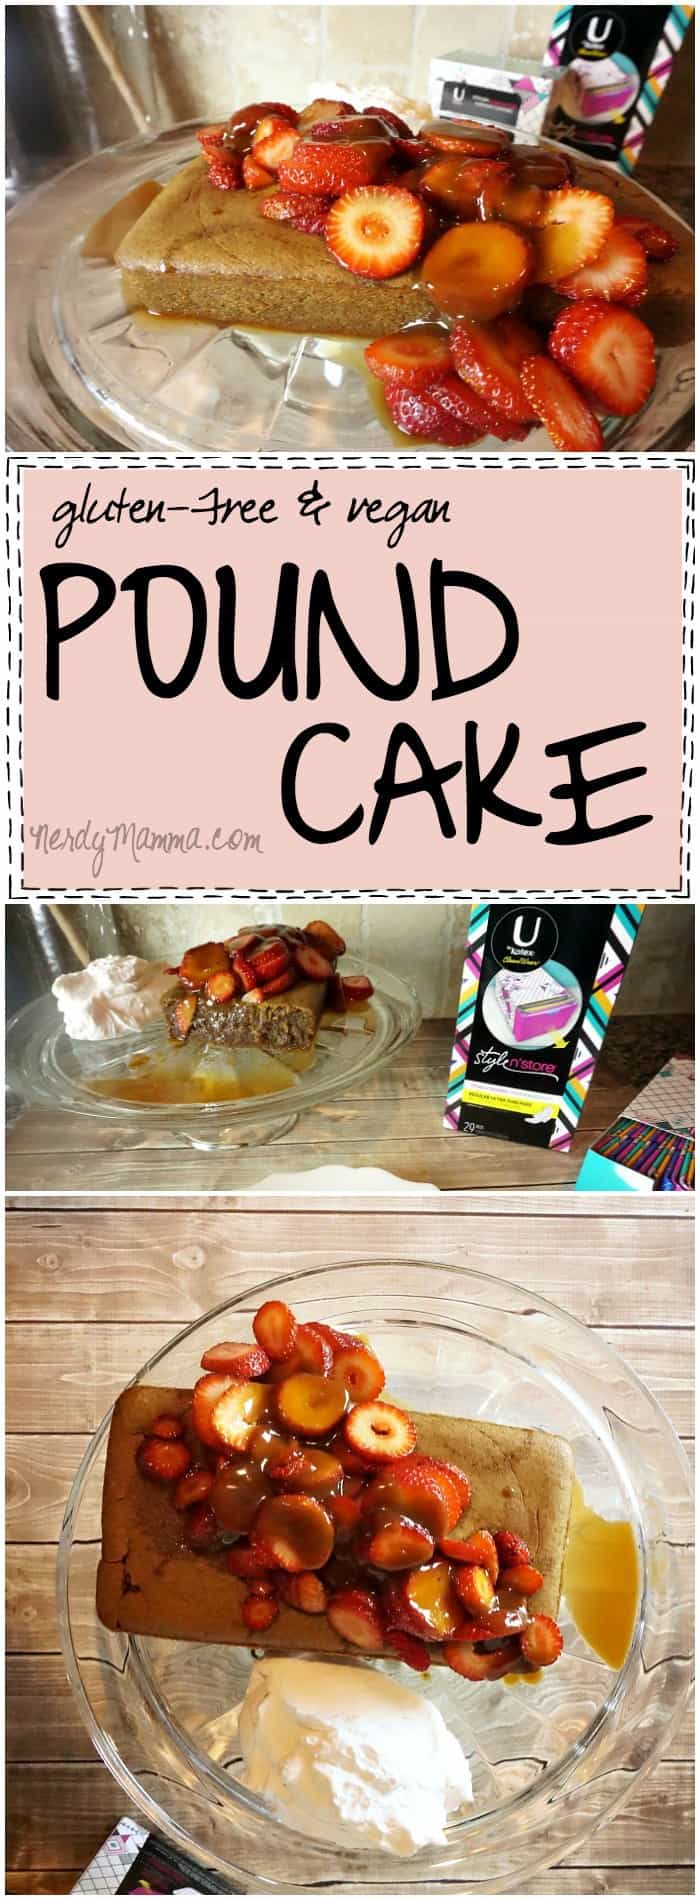 I seriously can't think of a better dessert or snack for that time of the month. It's so easy, actually kind of healthy (it's paleo, vegan and gluten-free, after all)--this pound cake recipe is awesome.